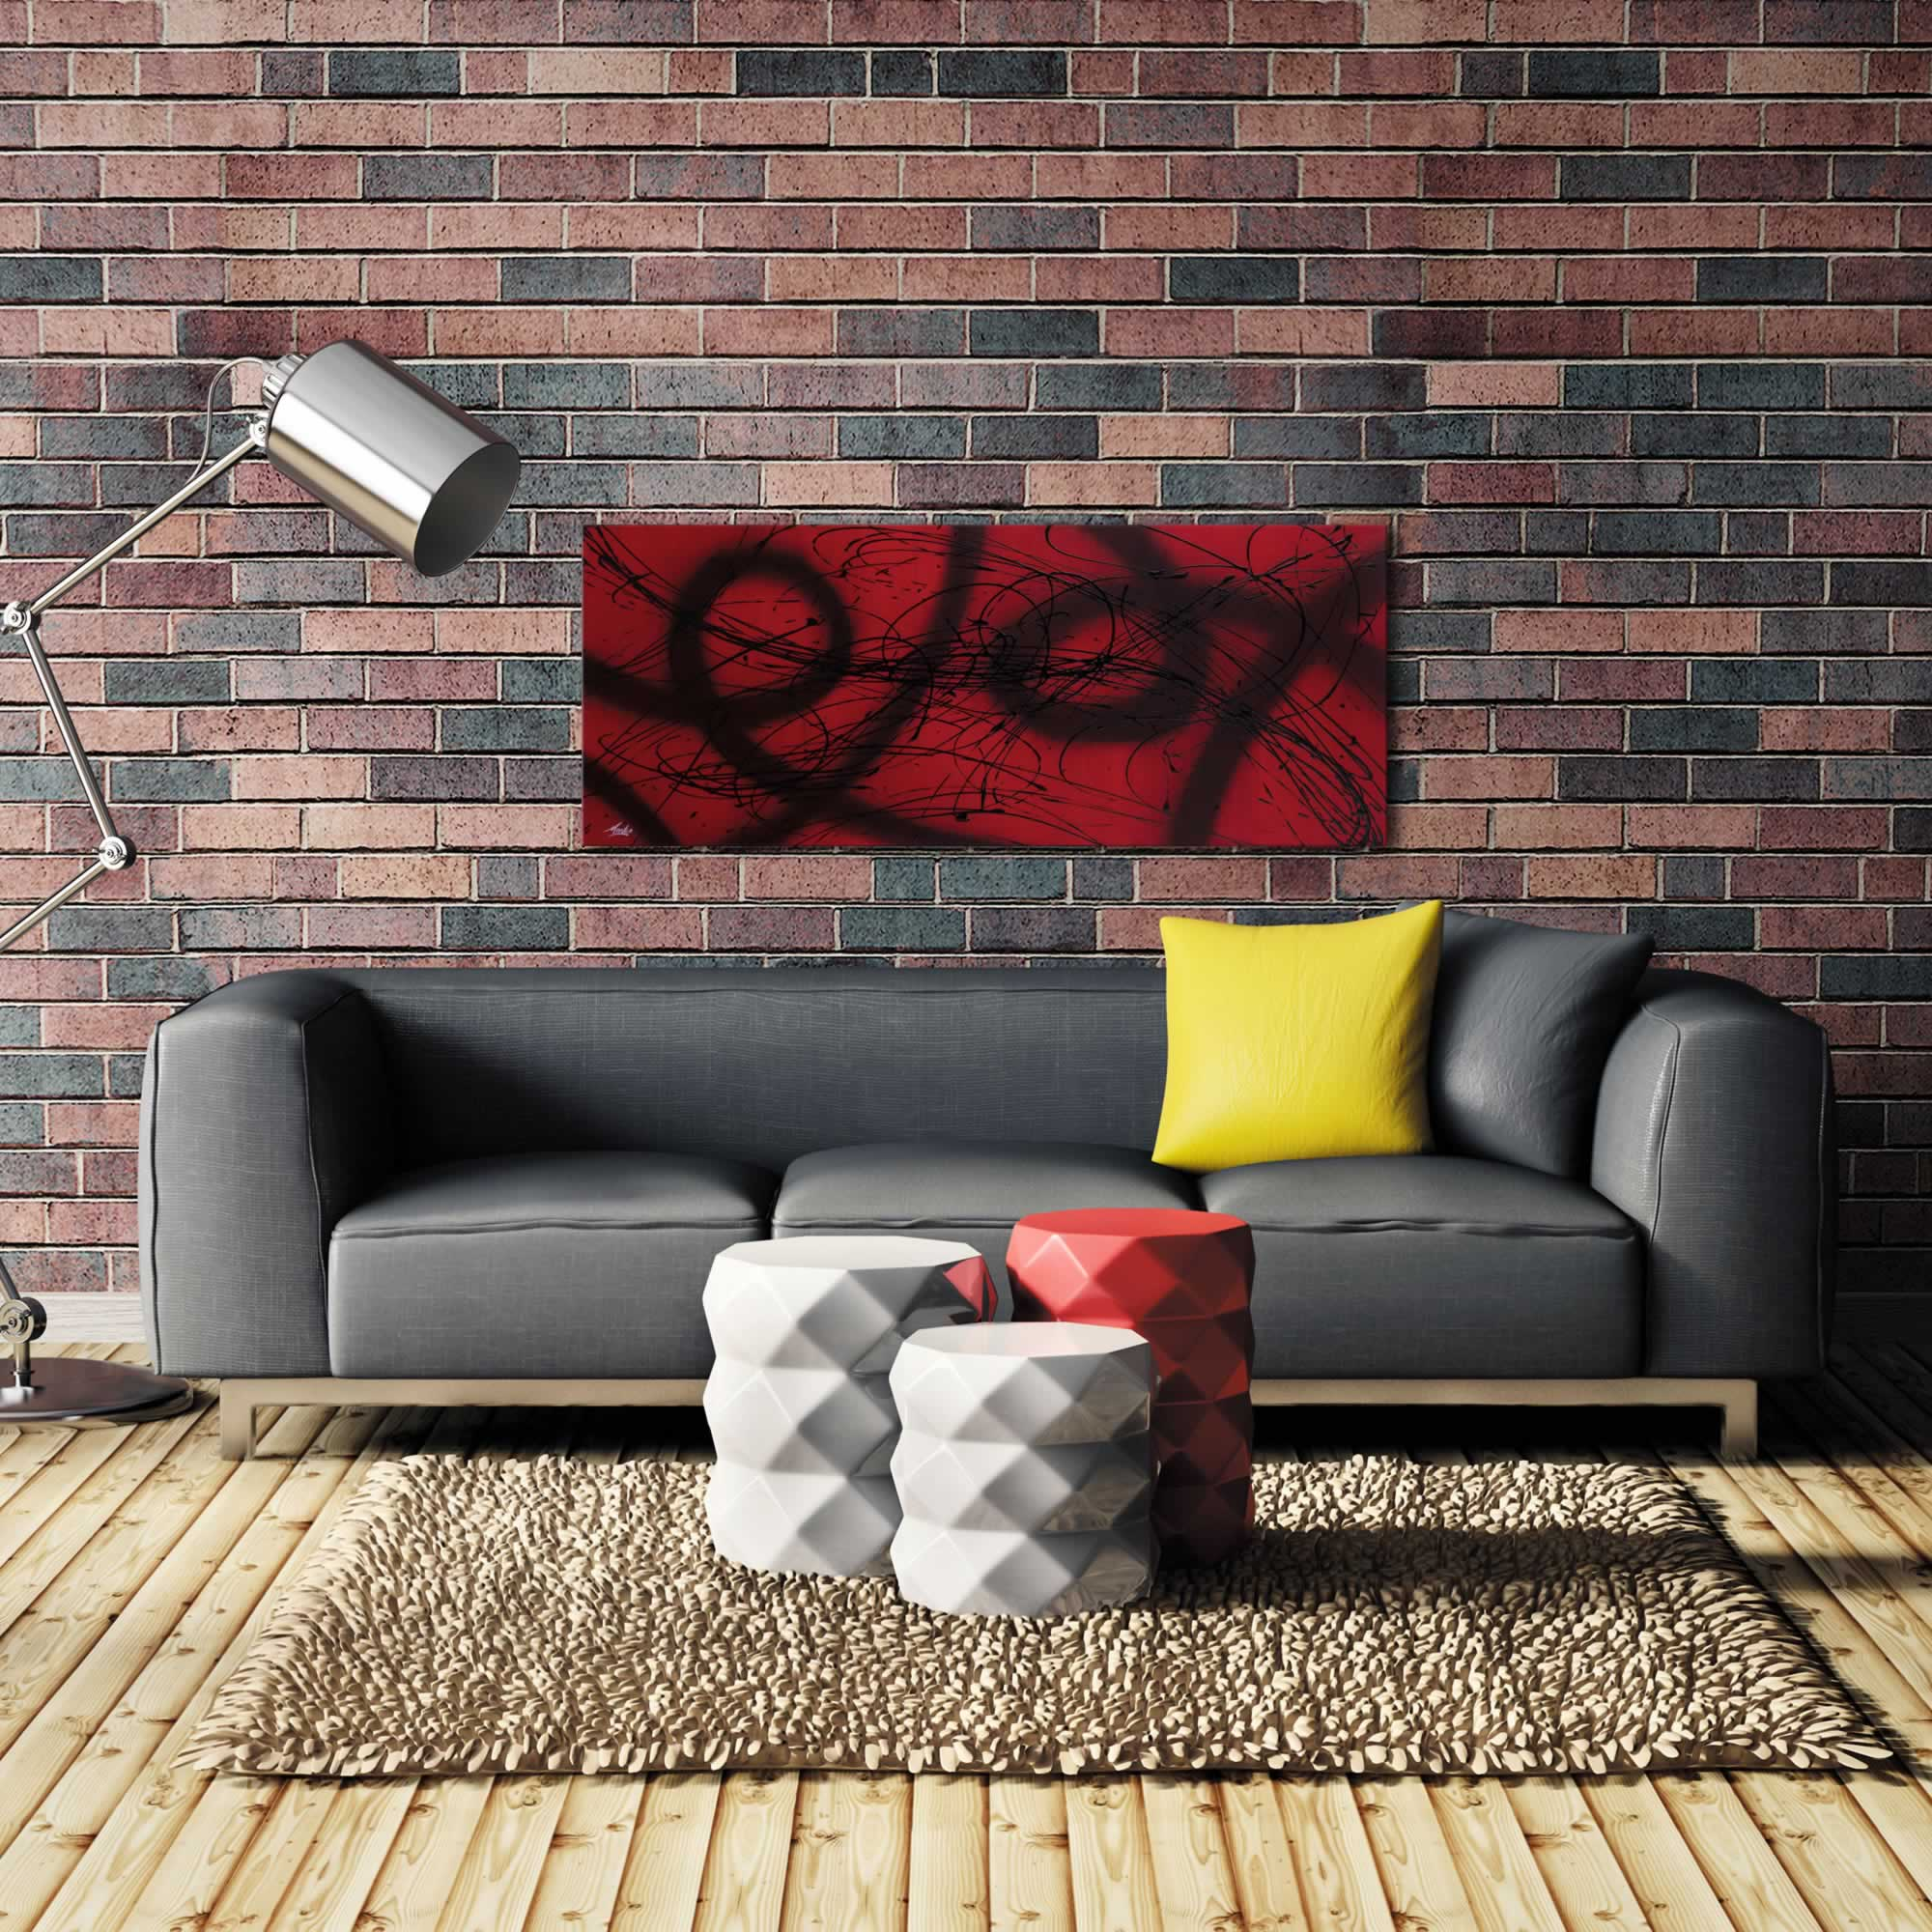 Connected - Black & Deep Red Painting, Modern Abstract Art, Contemporary Urban Decor - Alternate View 1